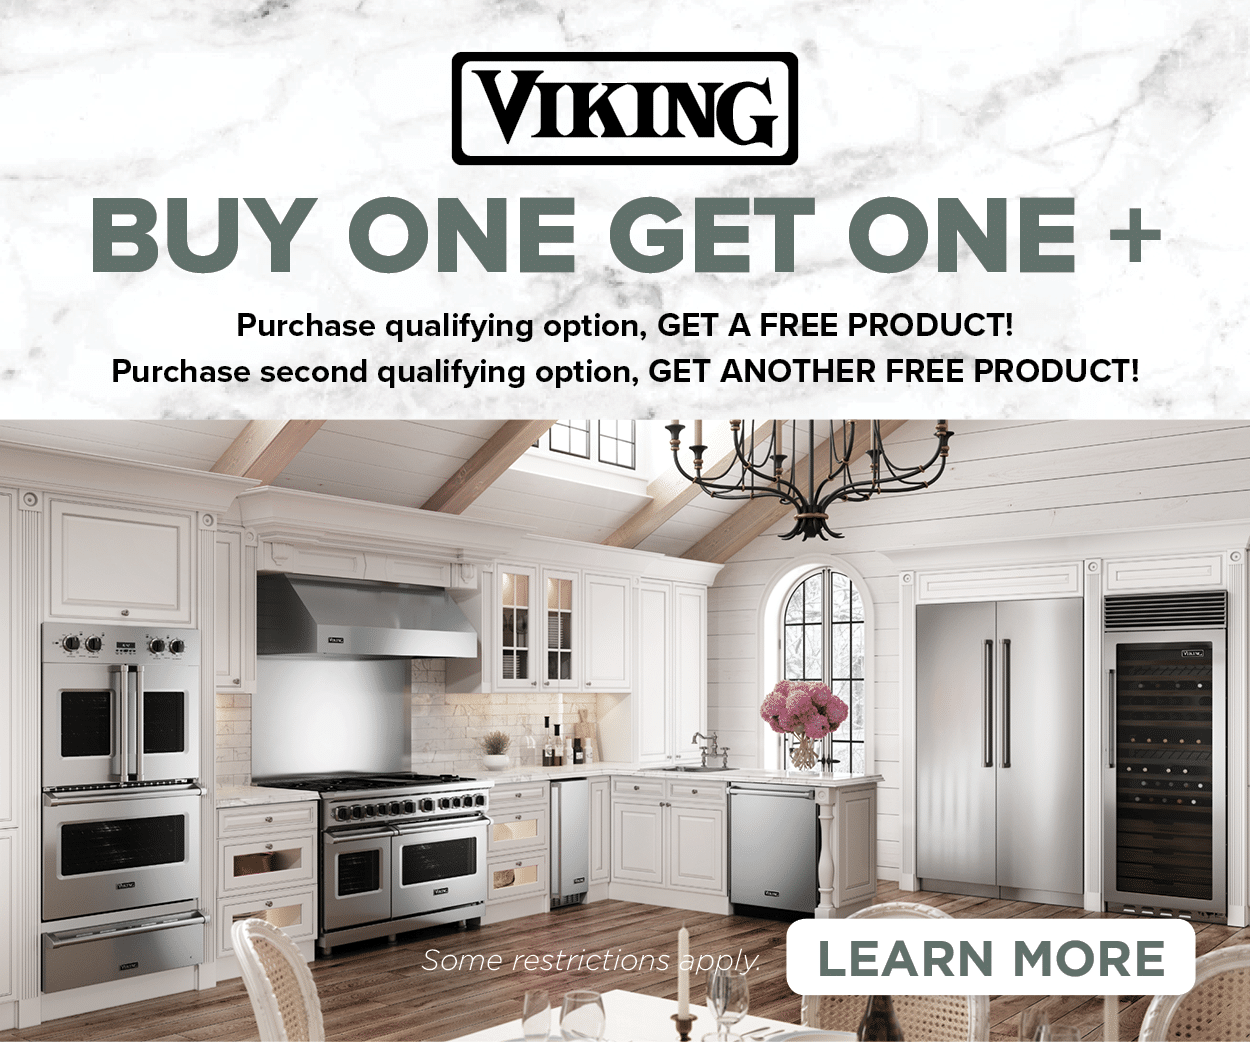 Viking Buy One Get One | Come Home To A Viking | Capital Distributing Showroom Dallas TX